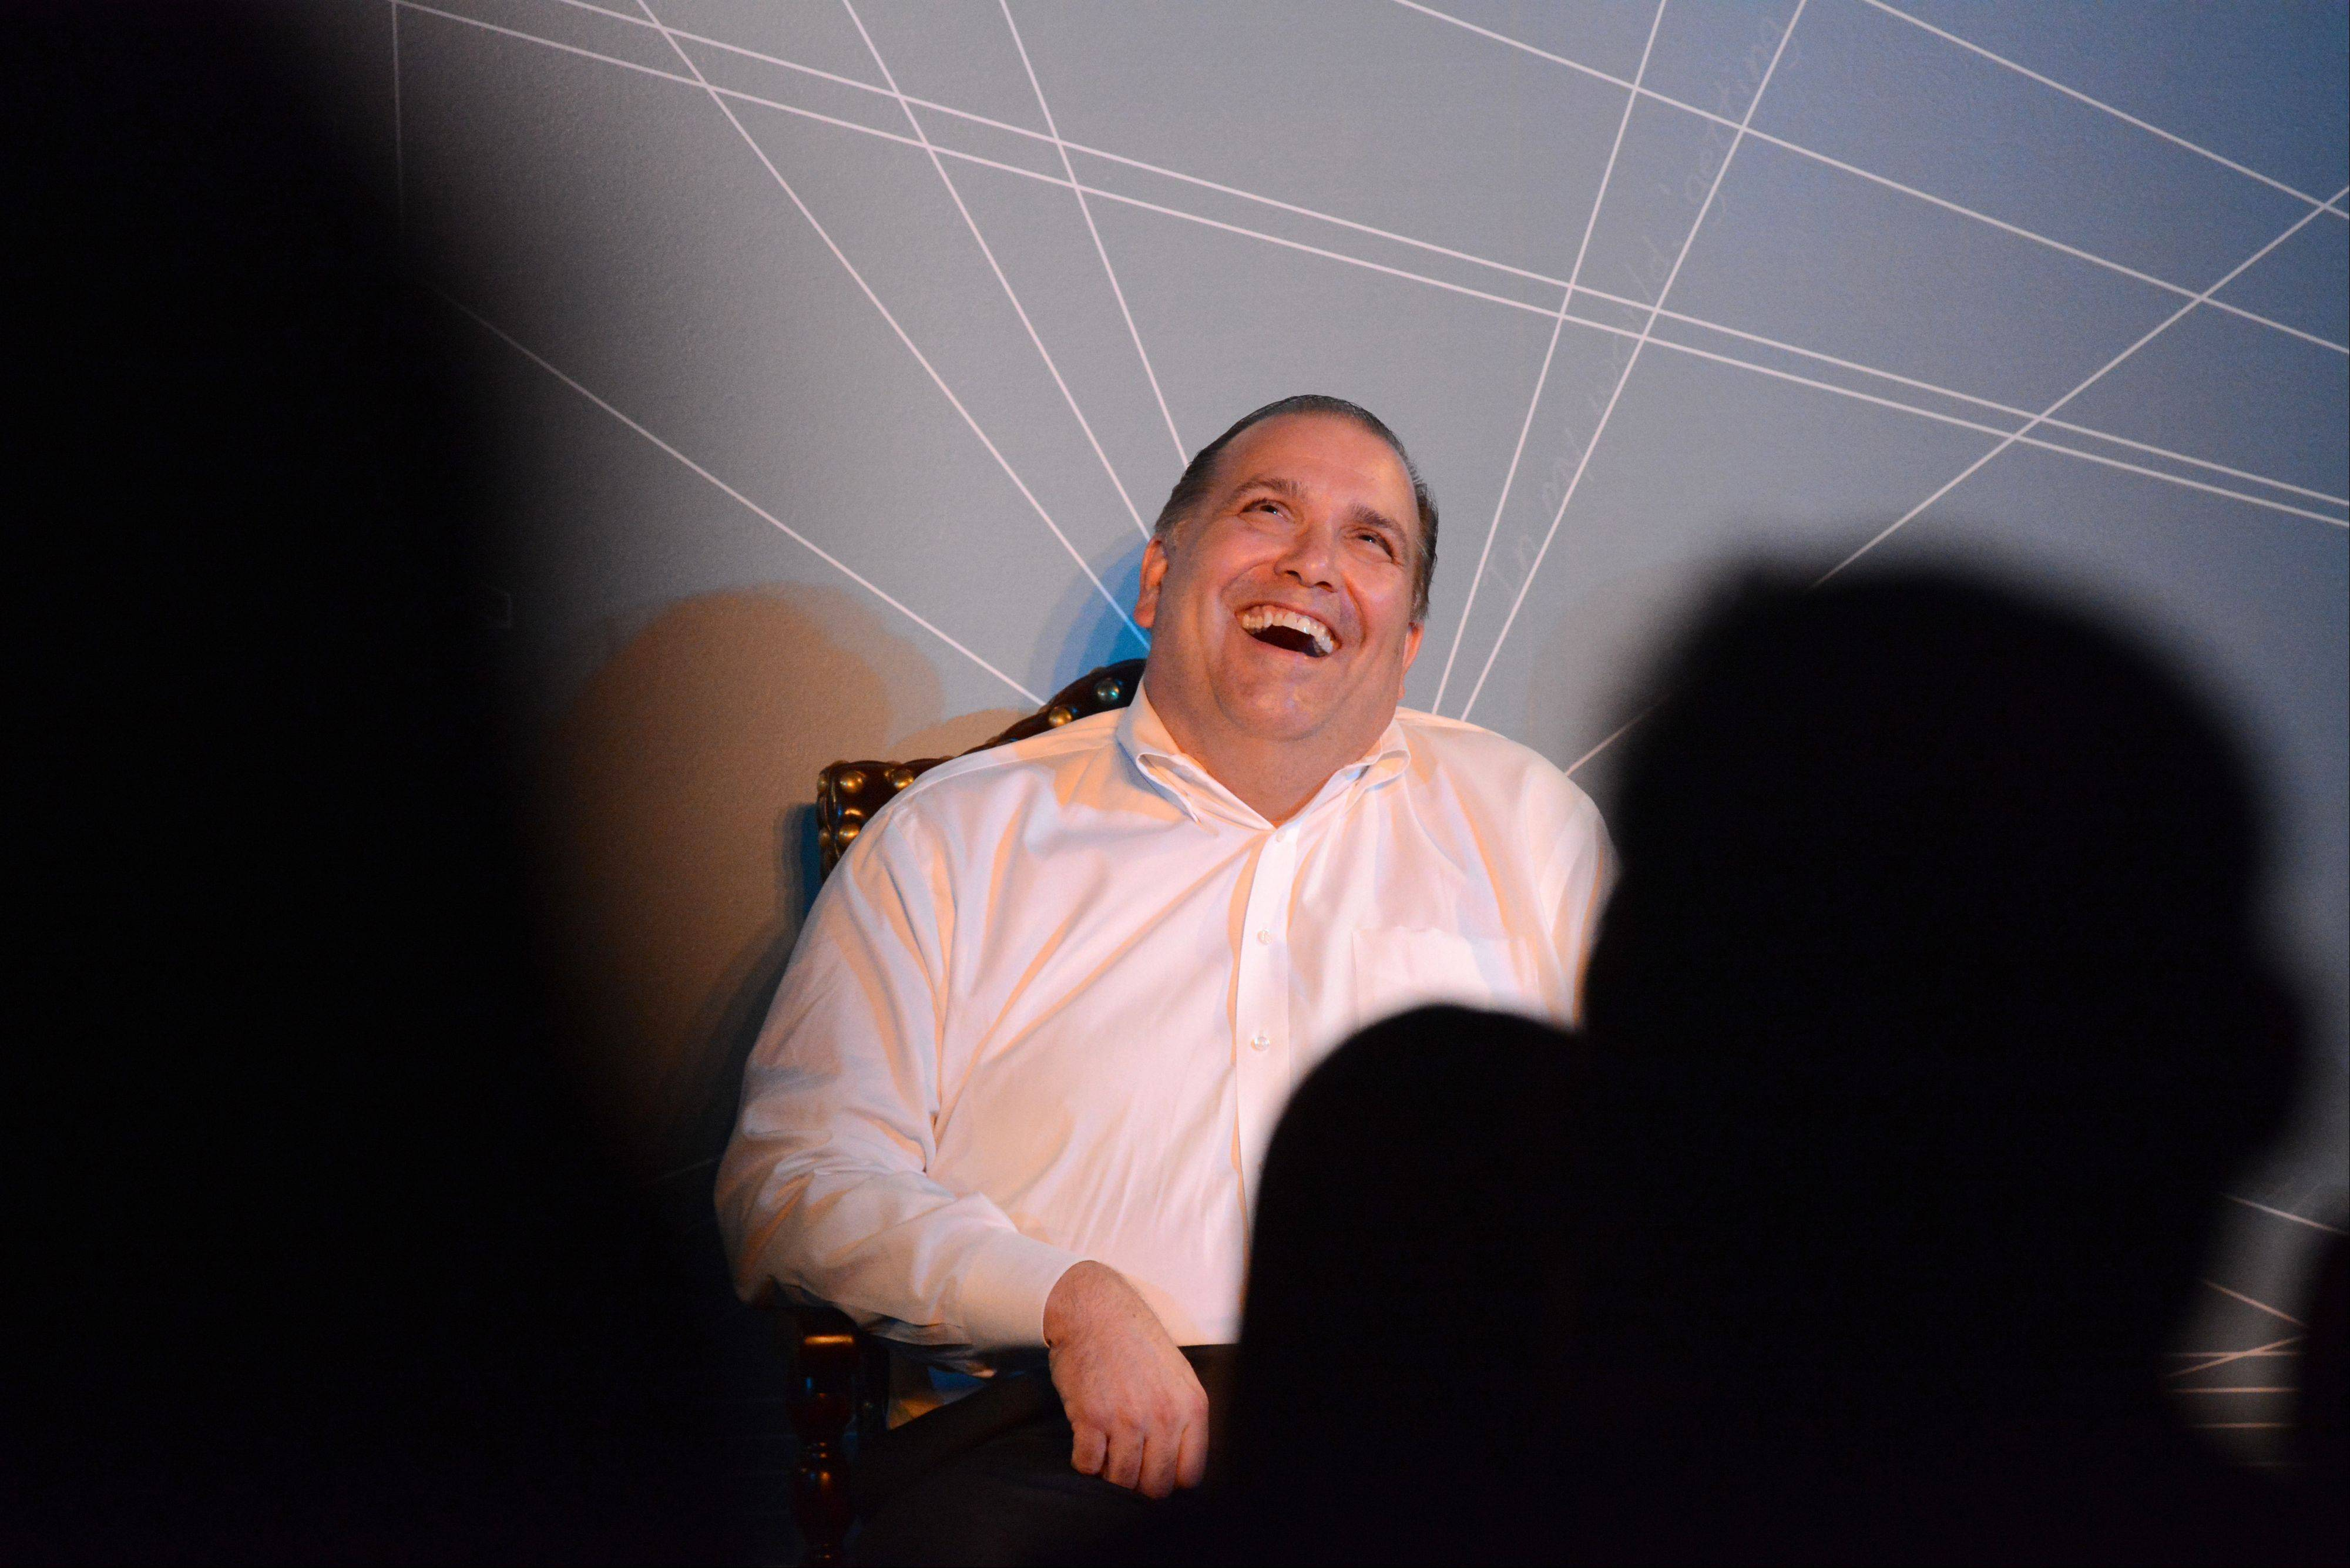 Rosemont Mayor Brad Stephens was all smiles during his roast Saturday at Zanies Comedy Club in Rosemont.